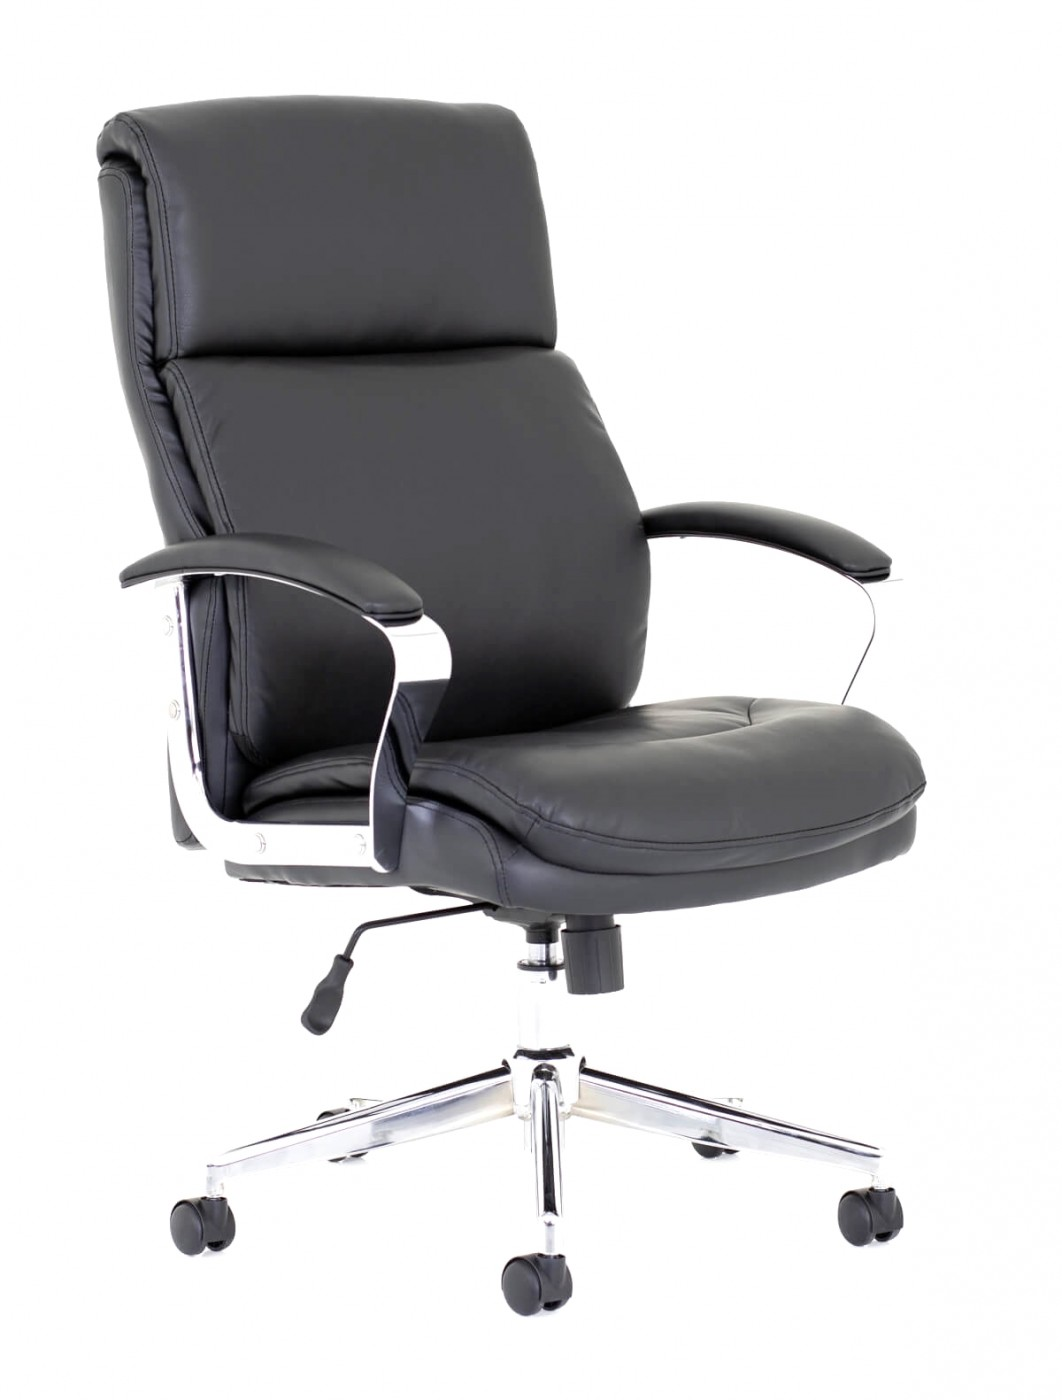 office chairs tunis black leather office chair tus01 121 office furniture. Black Bedroom Furniture Sets. Home Design Ideas